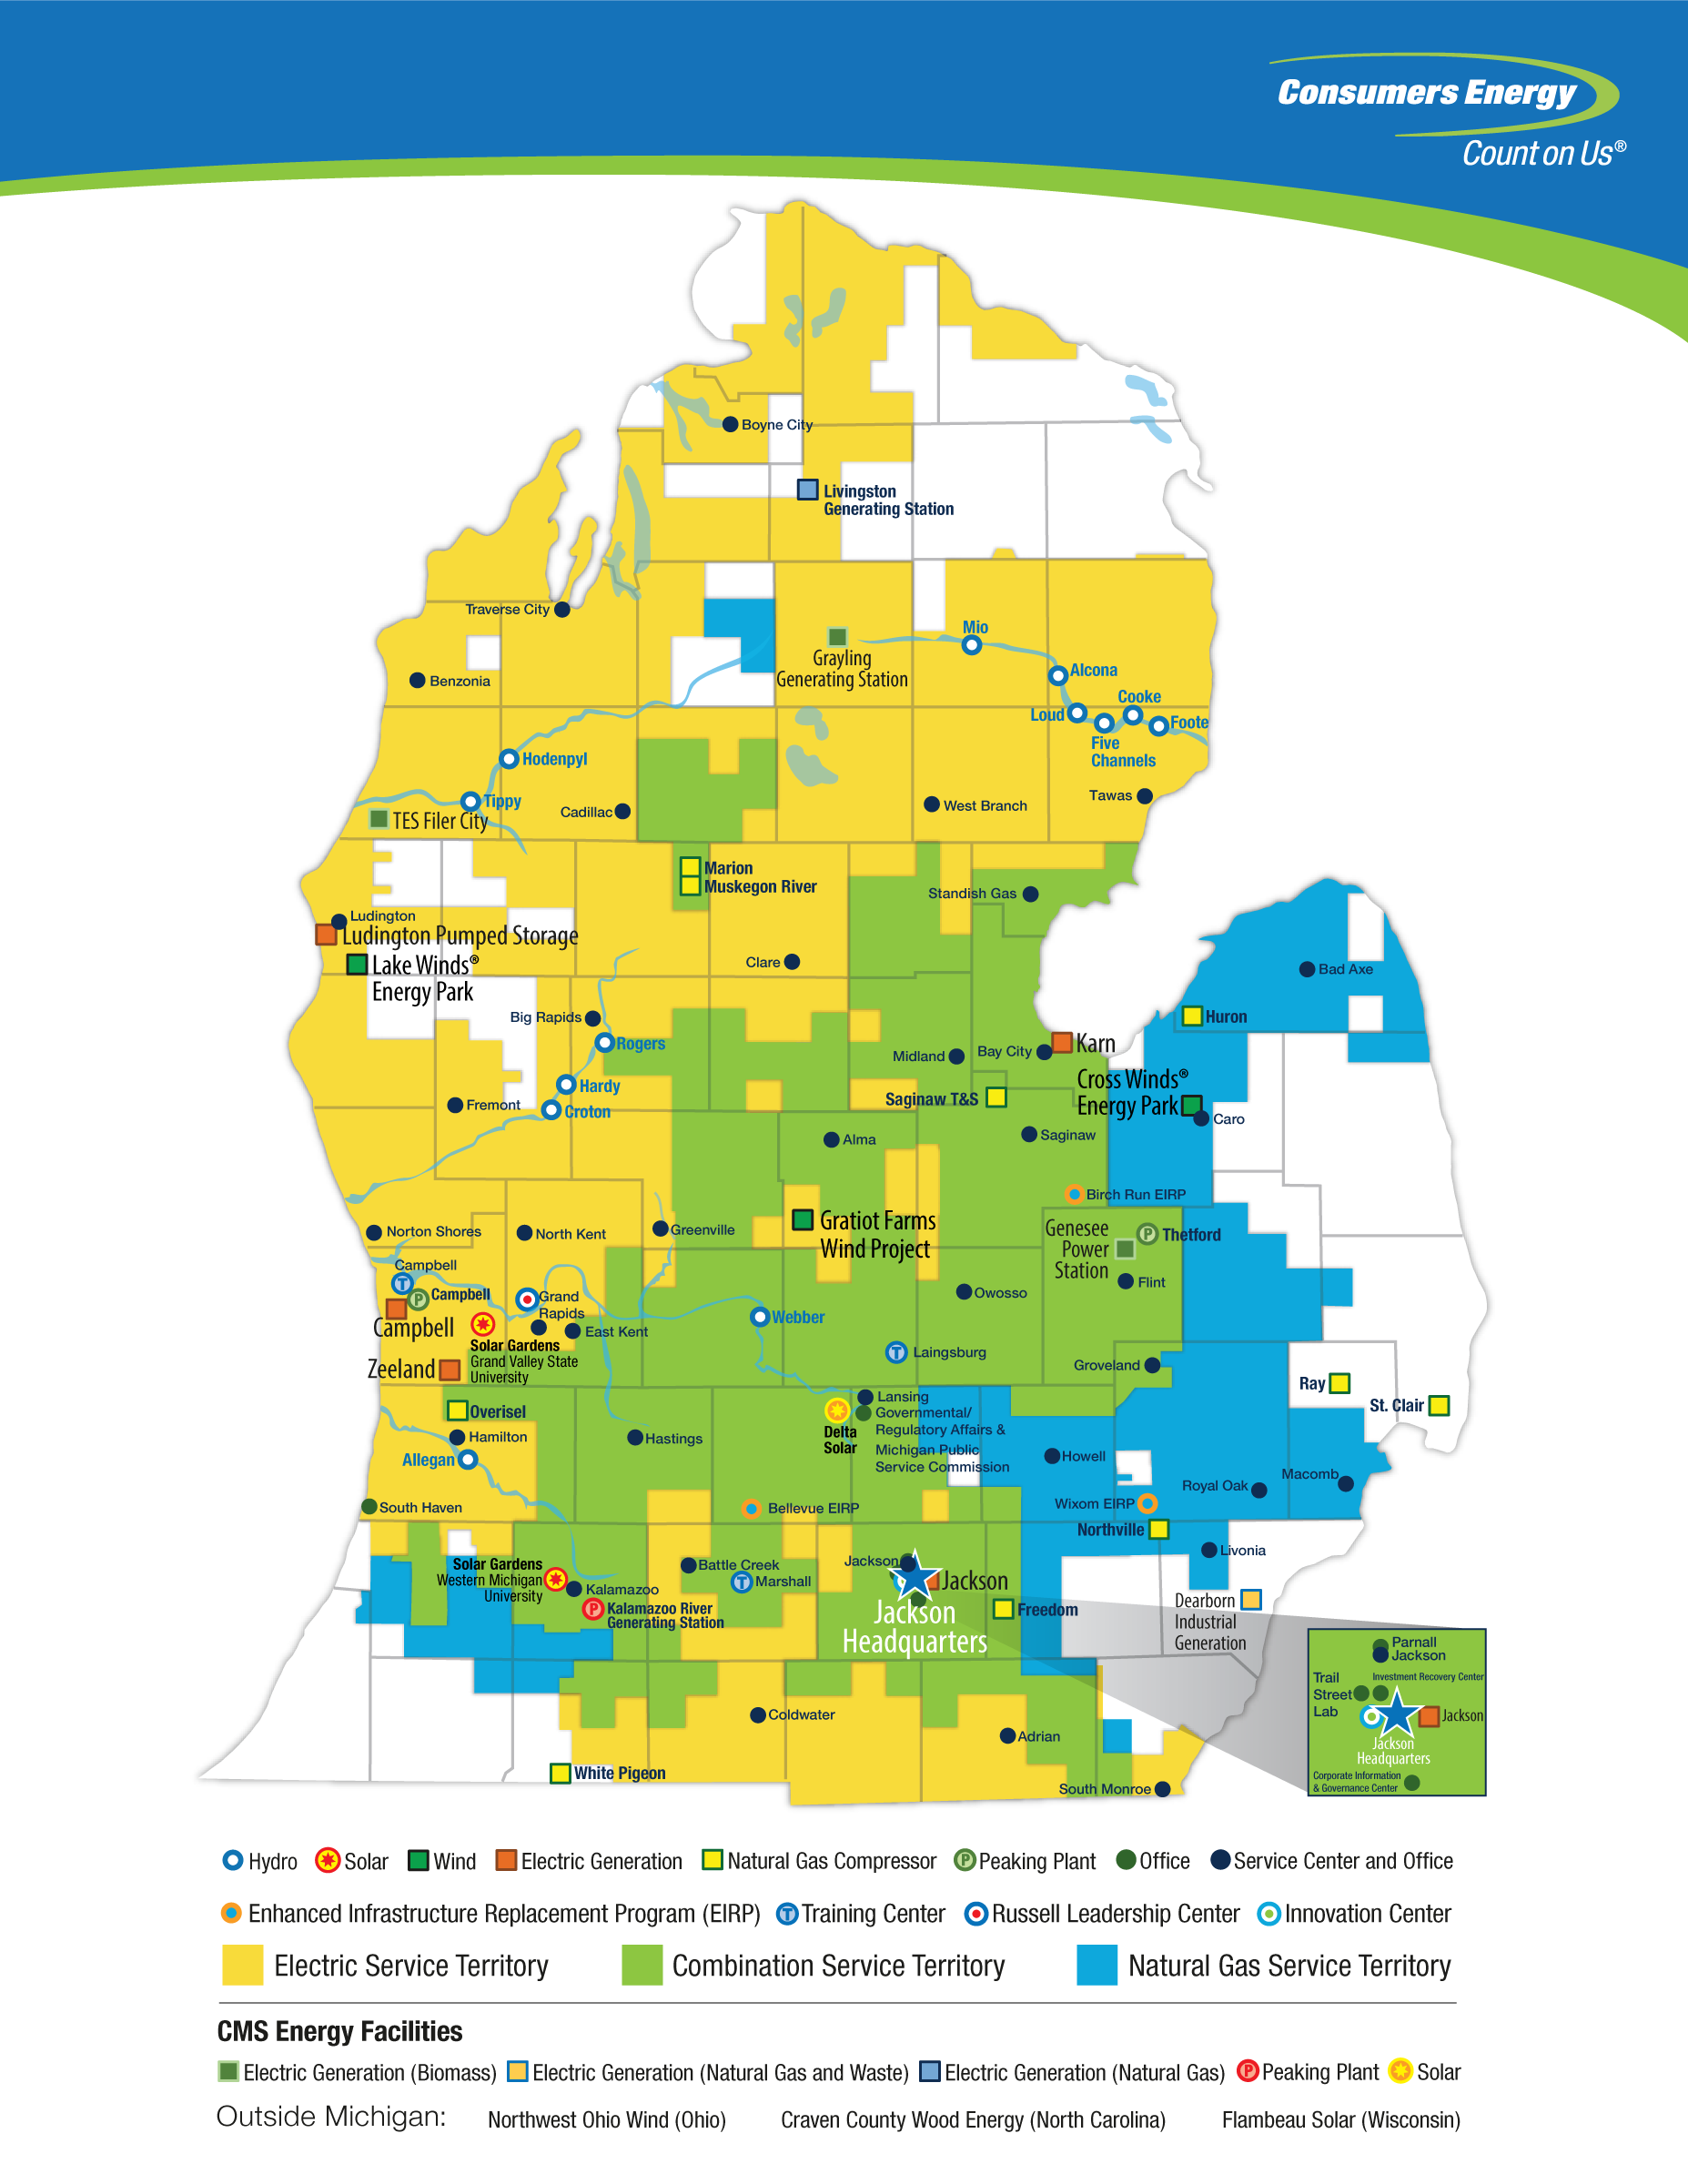 Electric and Natural Gas Service Territories | Consumers Energy